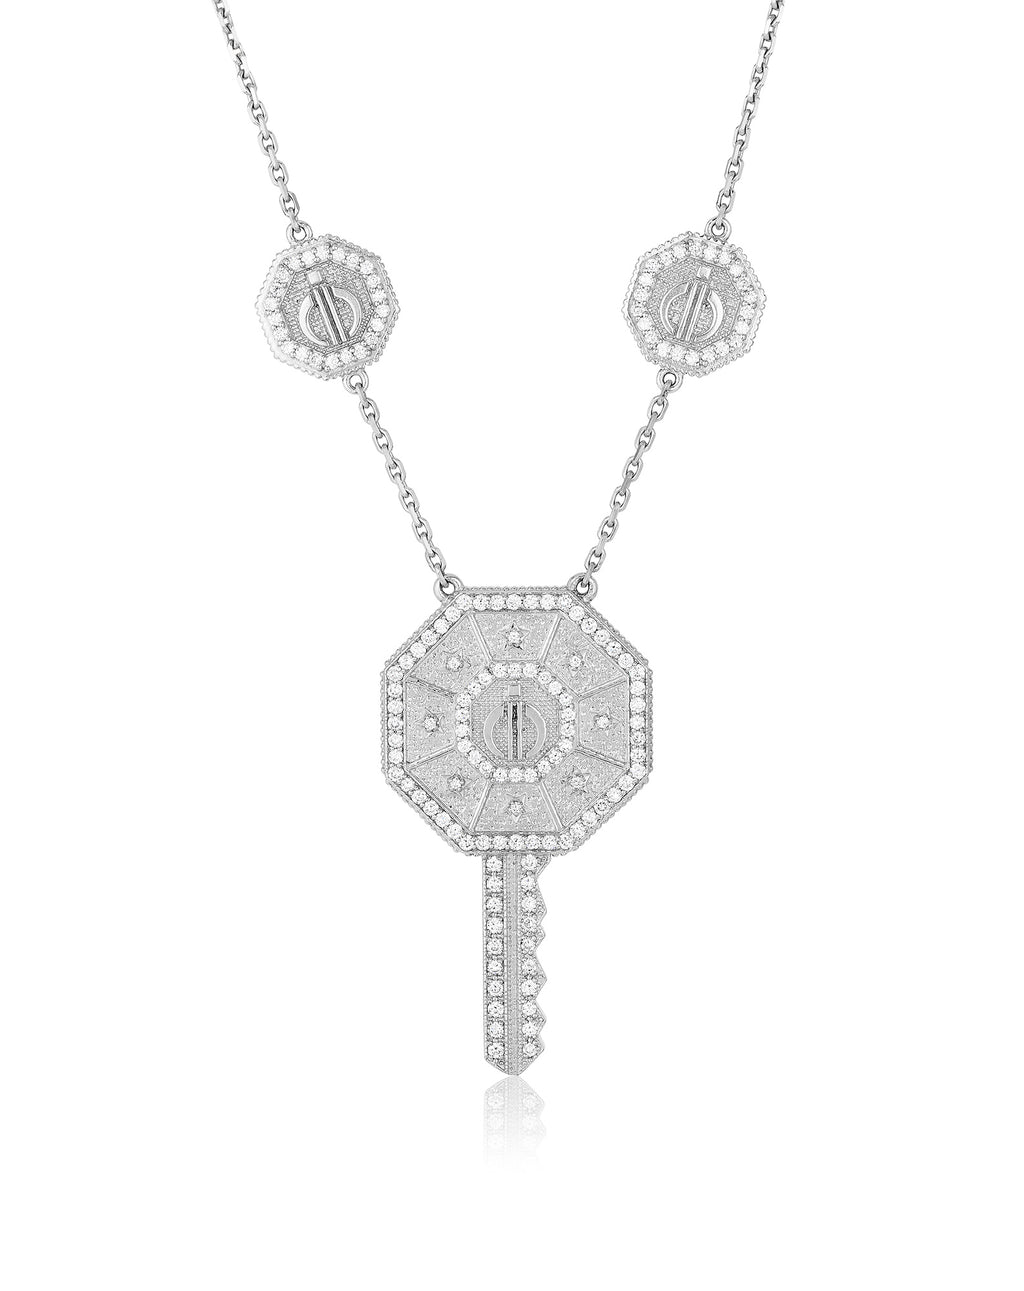 Key Day & Night Necklace in White Gold